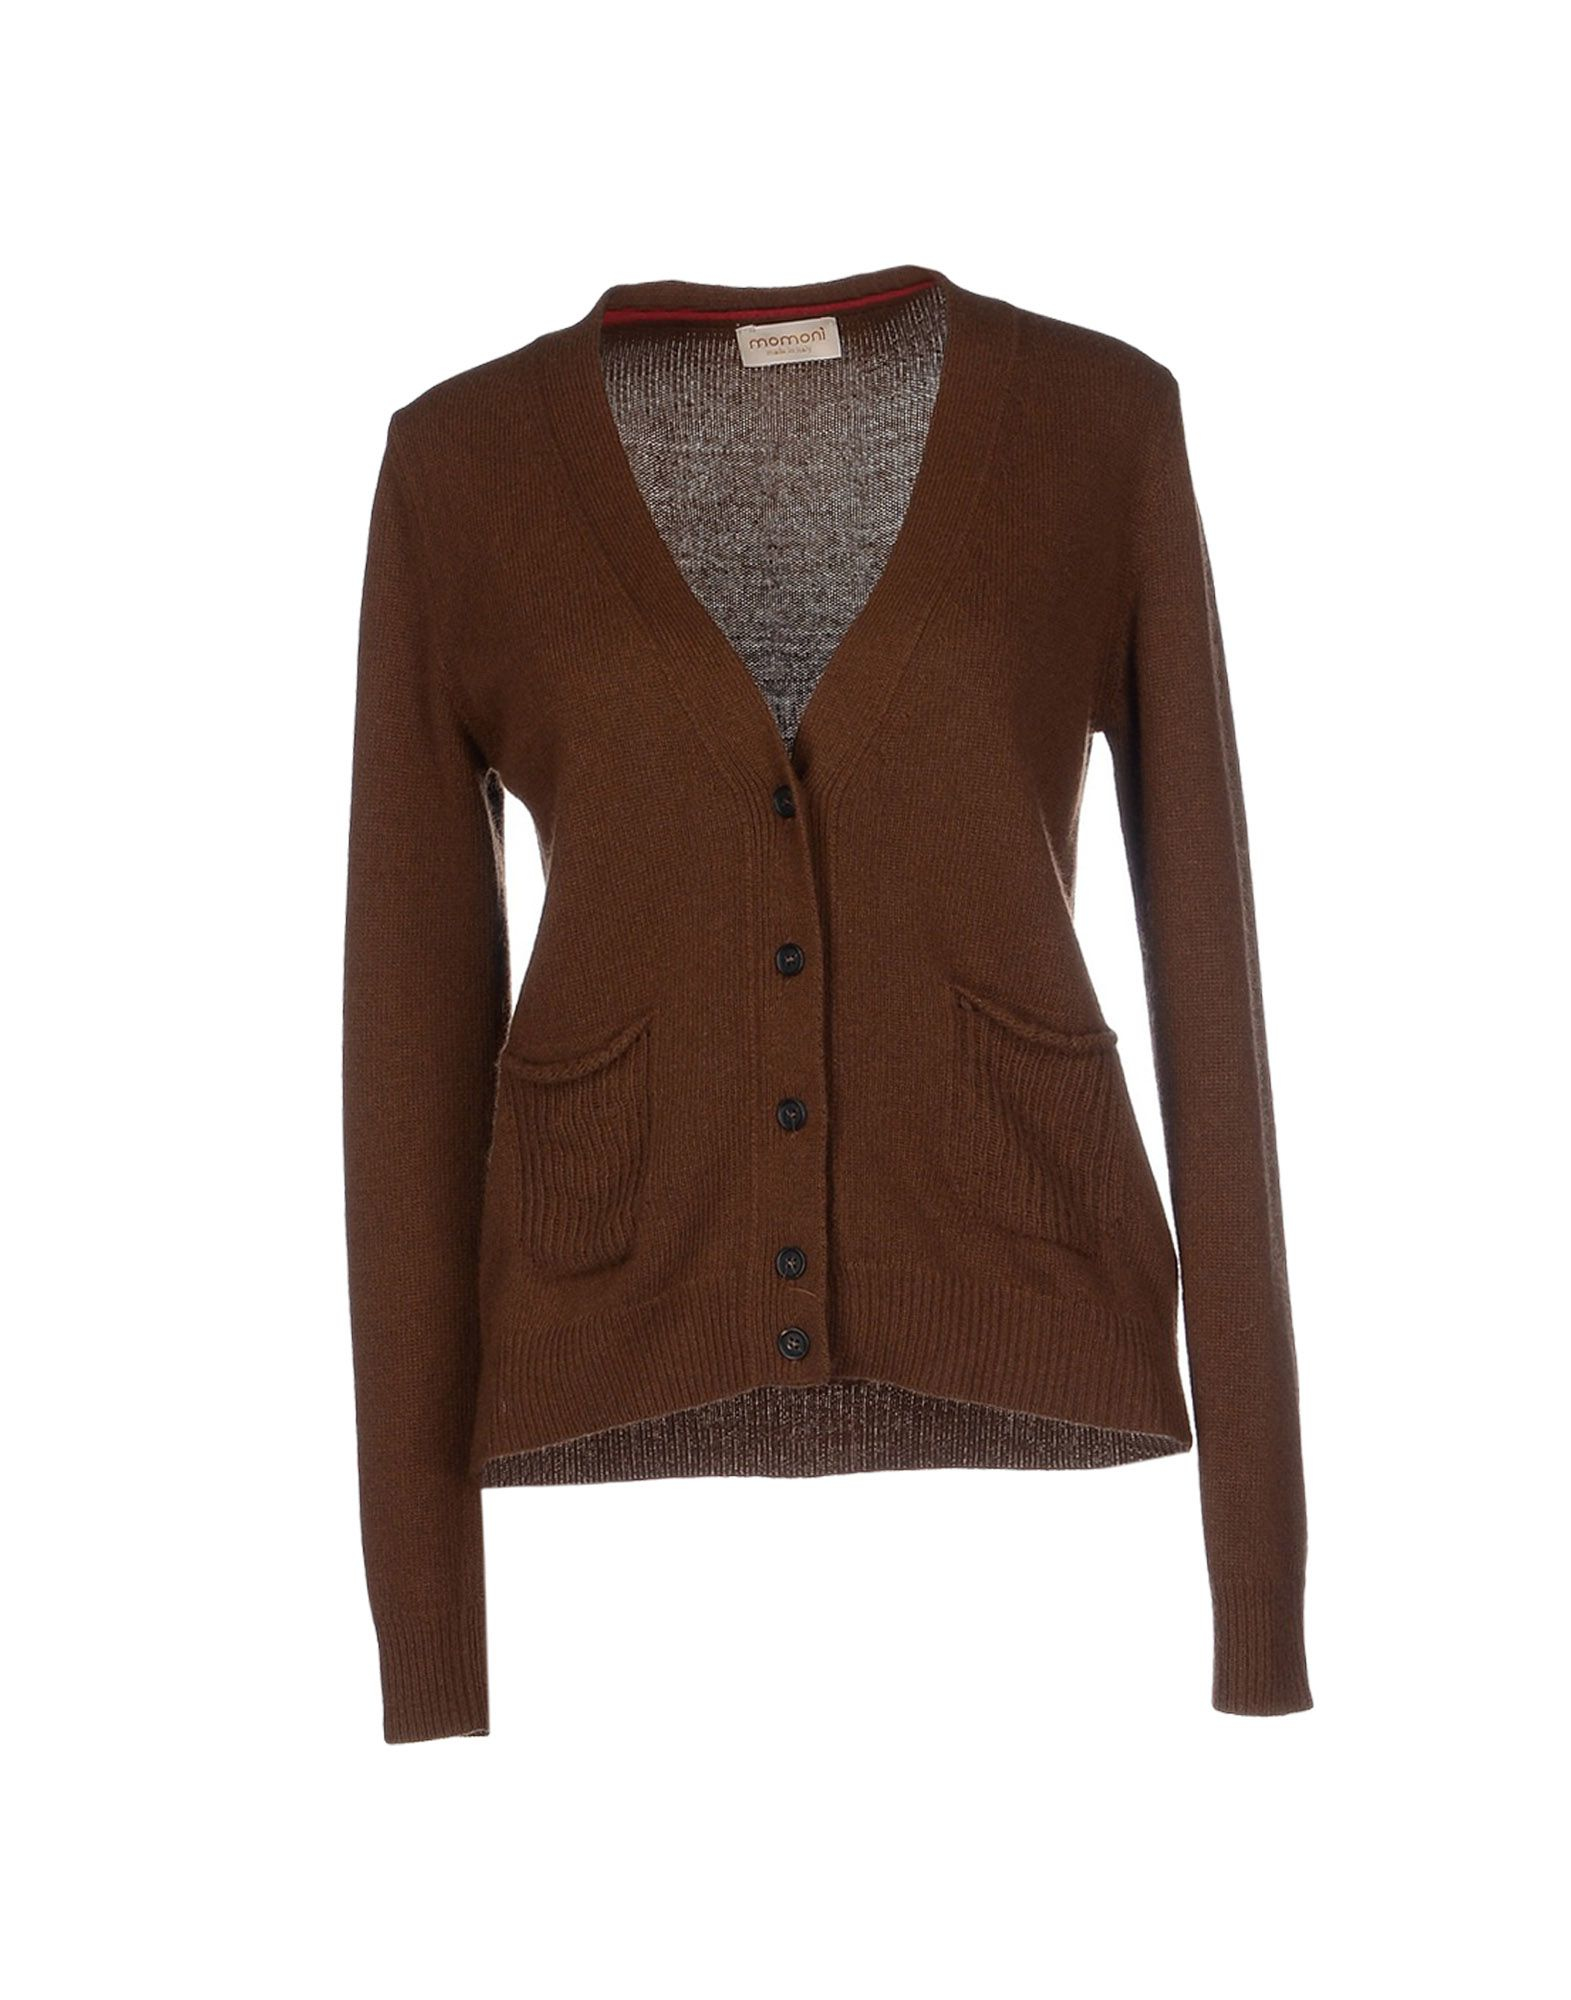 Shop brown long knit cardigan at Neiman Marcus, where you will find free shipping on the latest in fashion from top designers.